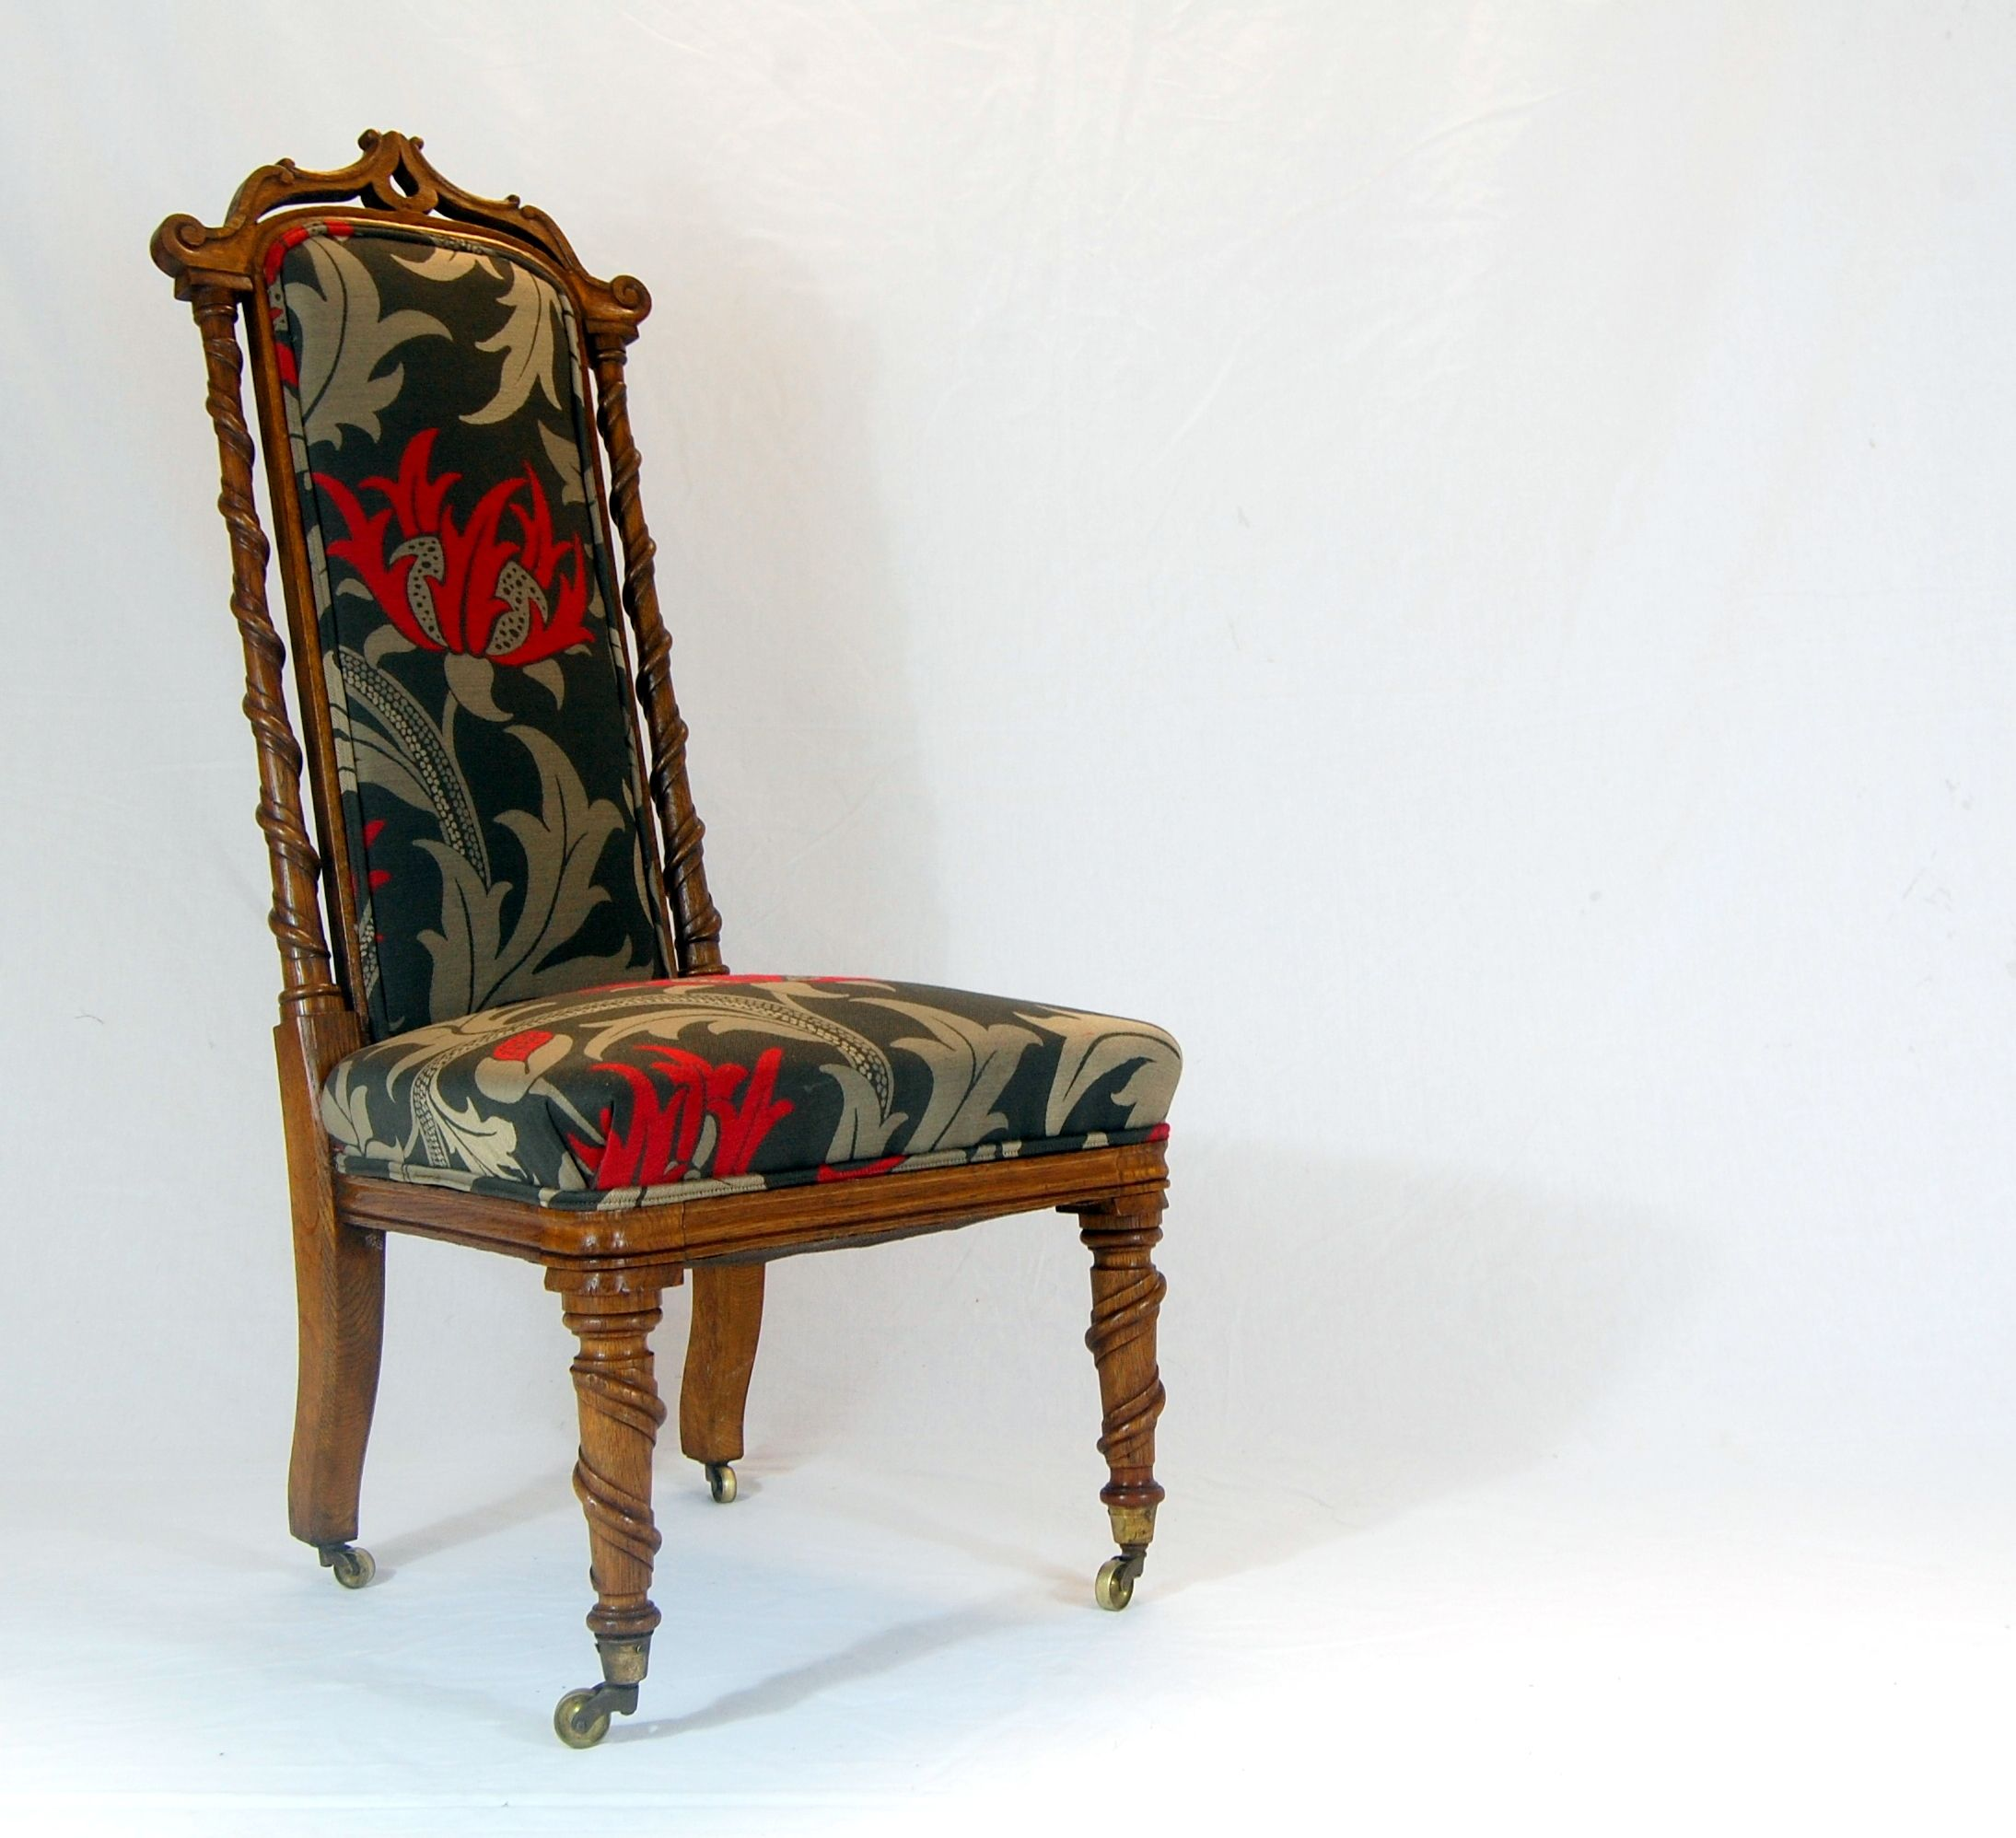 Beautiful Victorian Nursing Chair Newly Finished In William Morris Fabric Sold Nursing Chair Antique Chairs Upholstery Fabric For Chairs